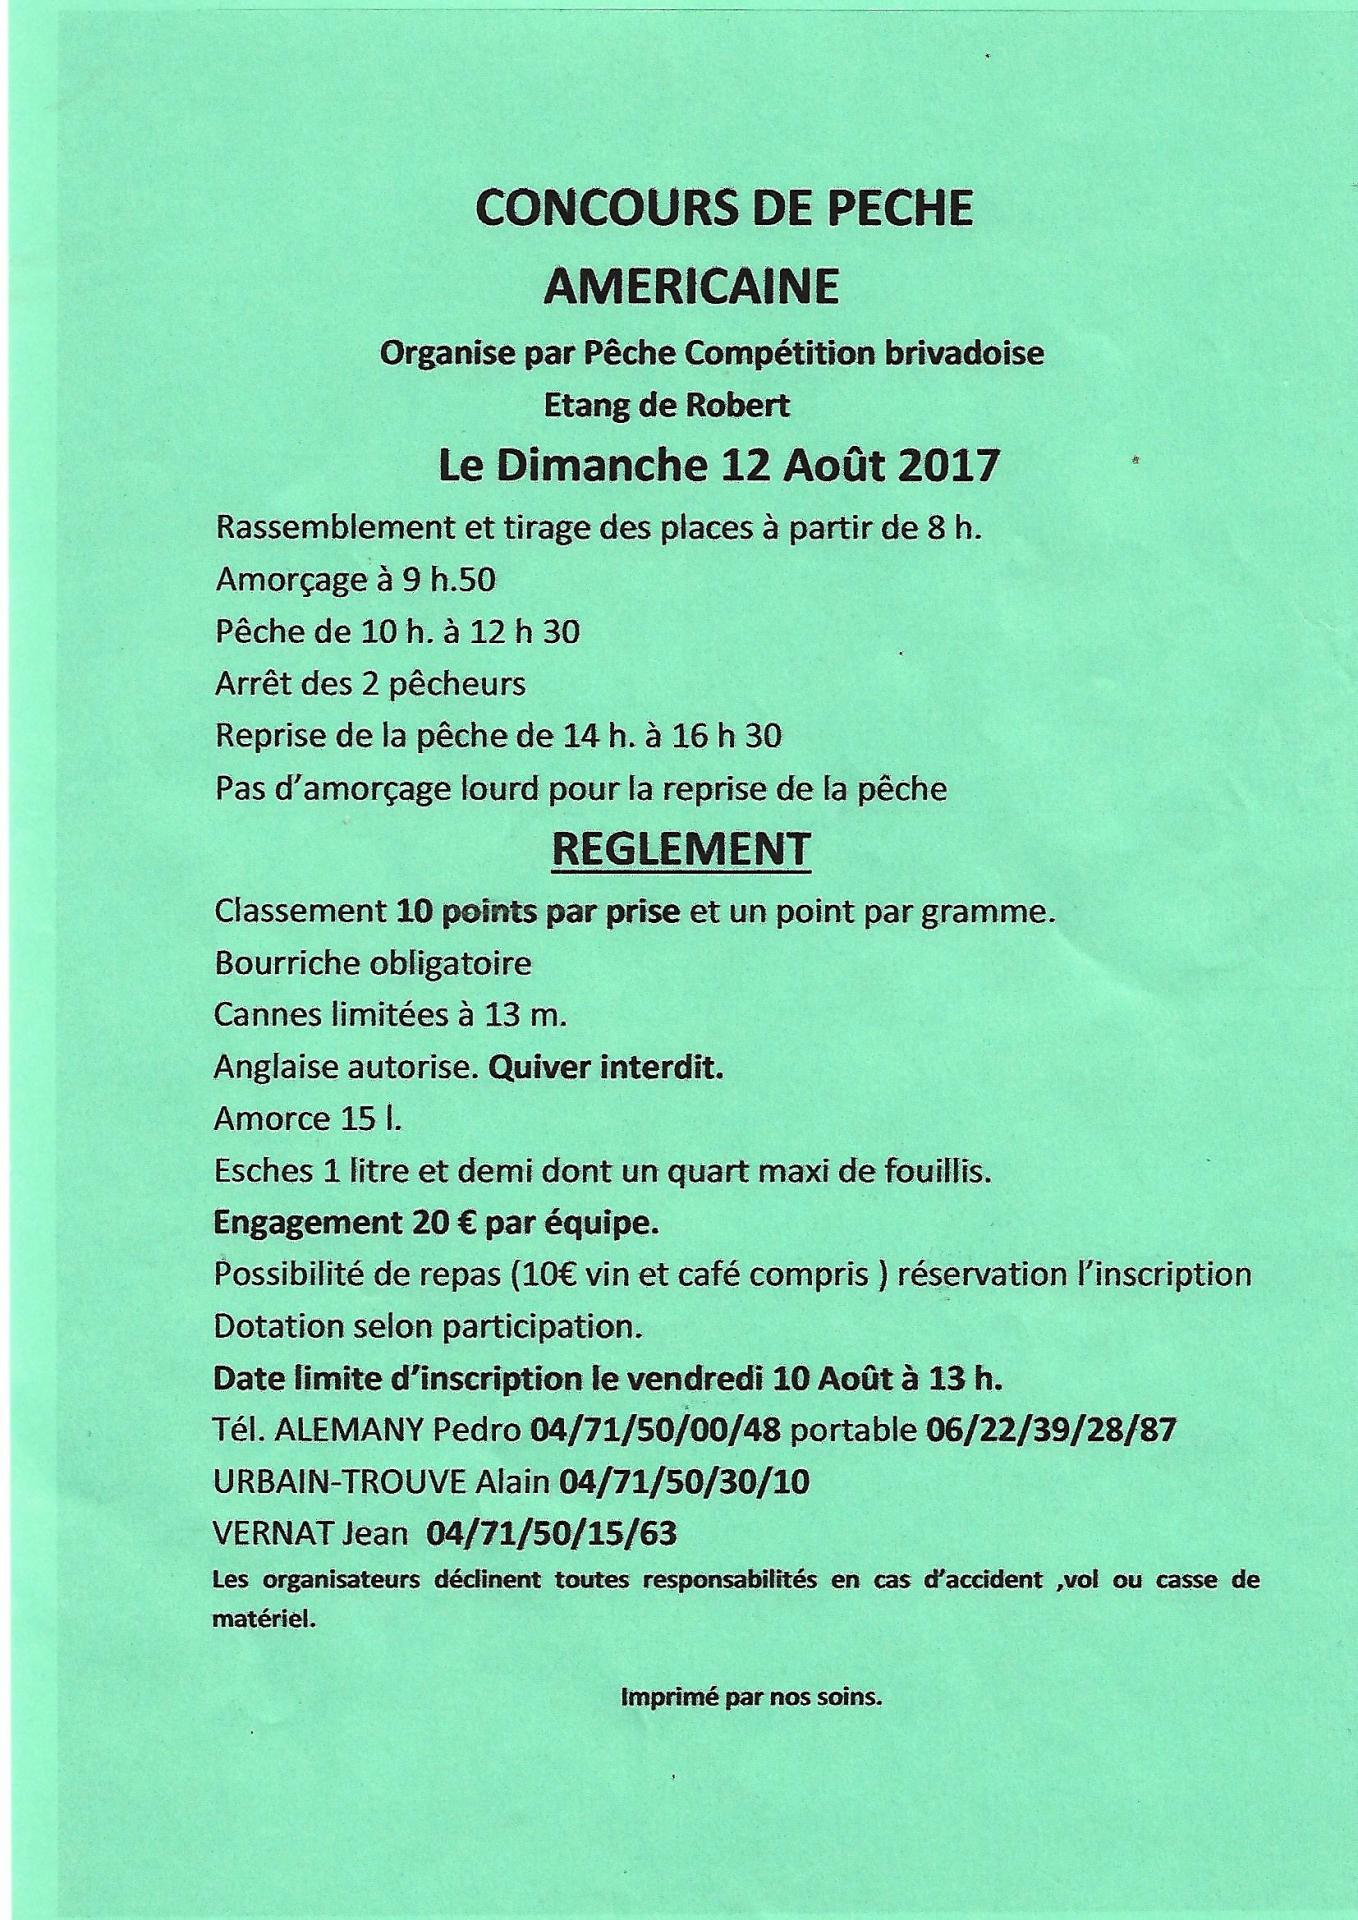 Concours americaine 12 aout